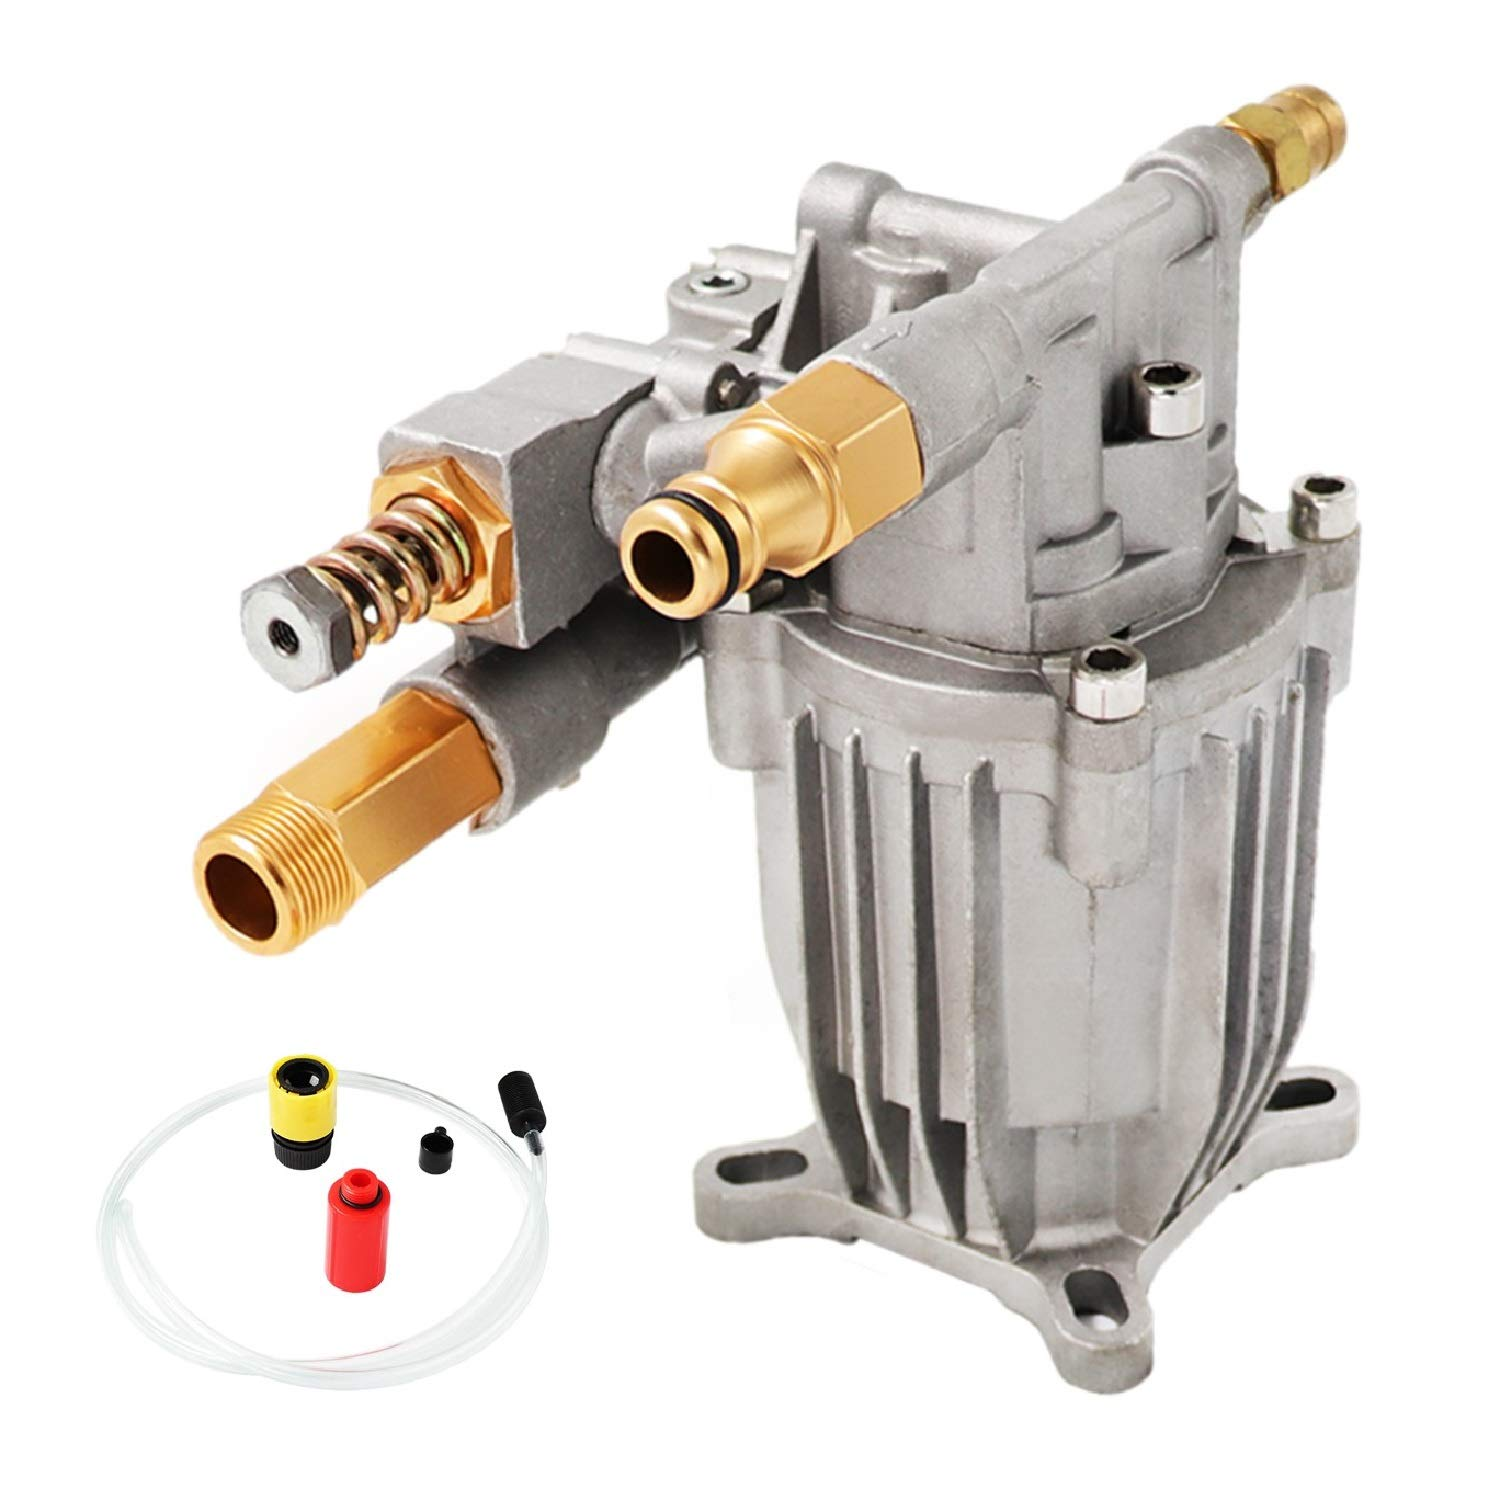 EDOU Gas Pressure Washer Pump Replacement 3/4'' Diameter Shaft Plunger Vertical Pump Axial Horizontal Pump Easy Start,2500 PSI,2.3 GPM by EDOU